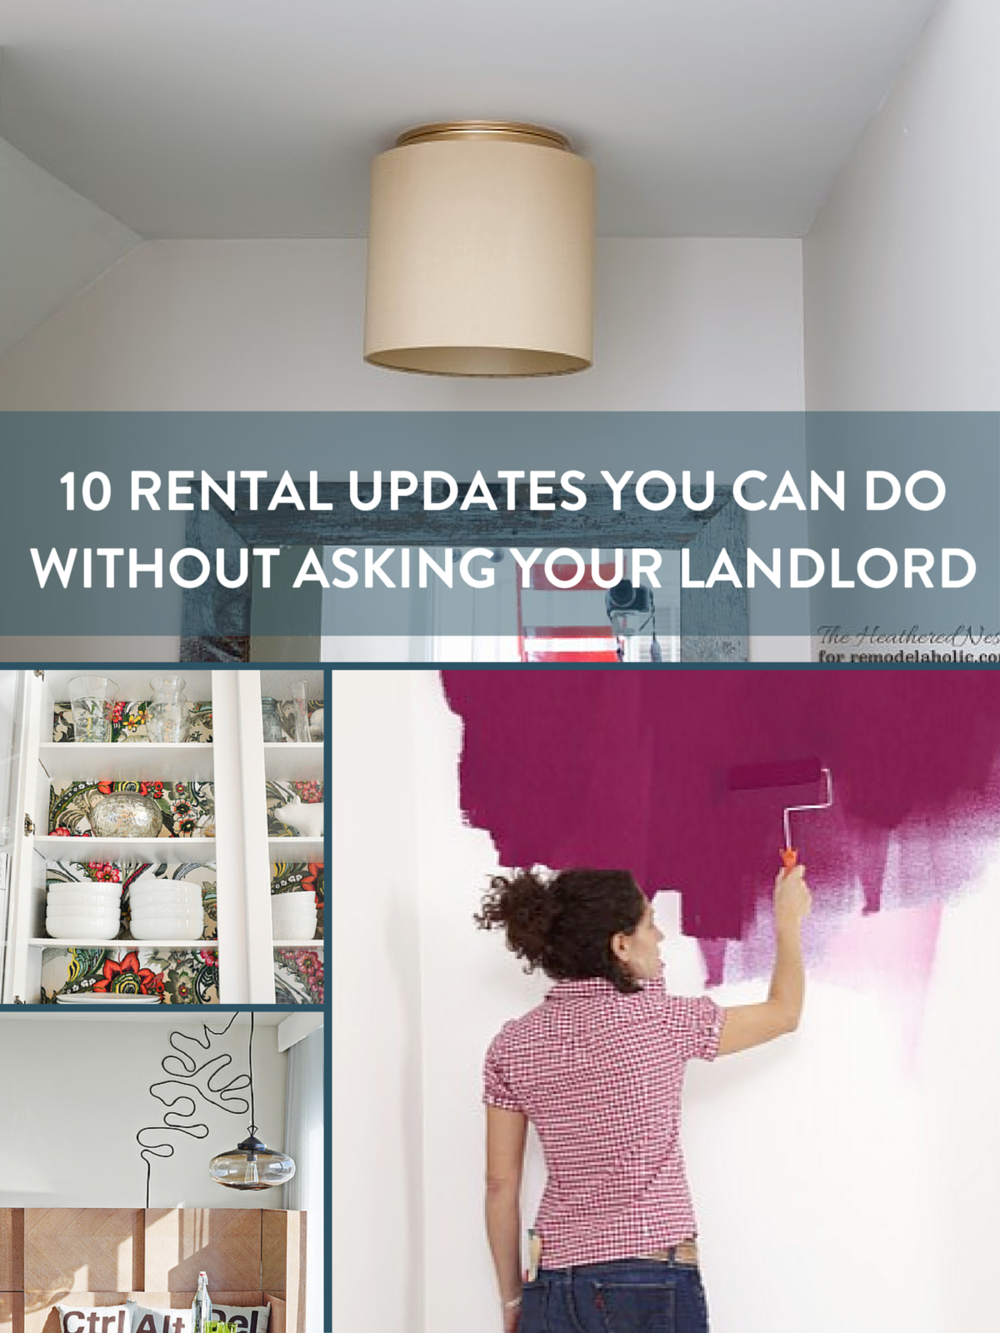 You Can Do It 10 Rental Updates